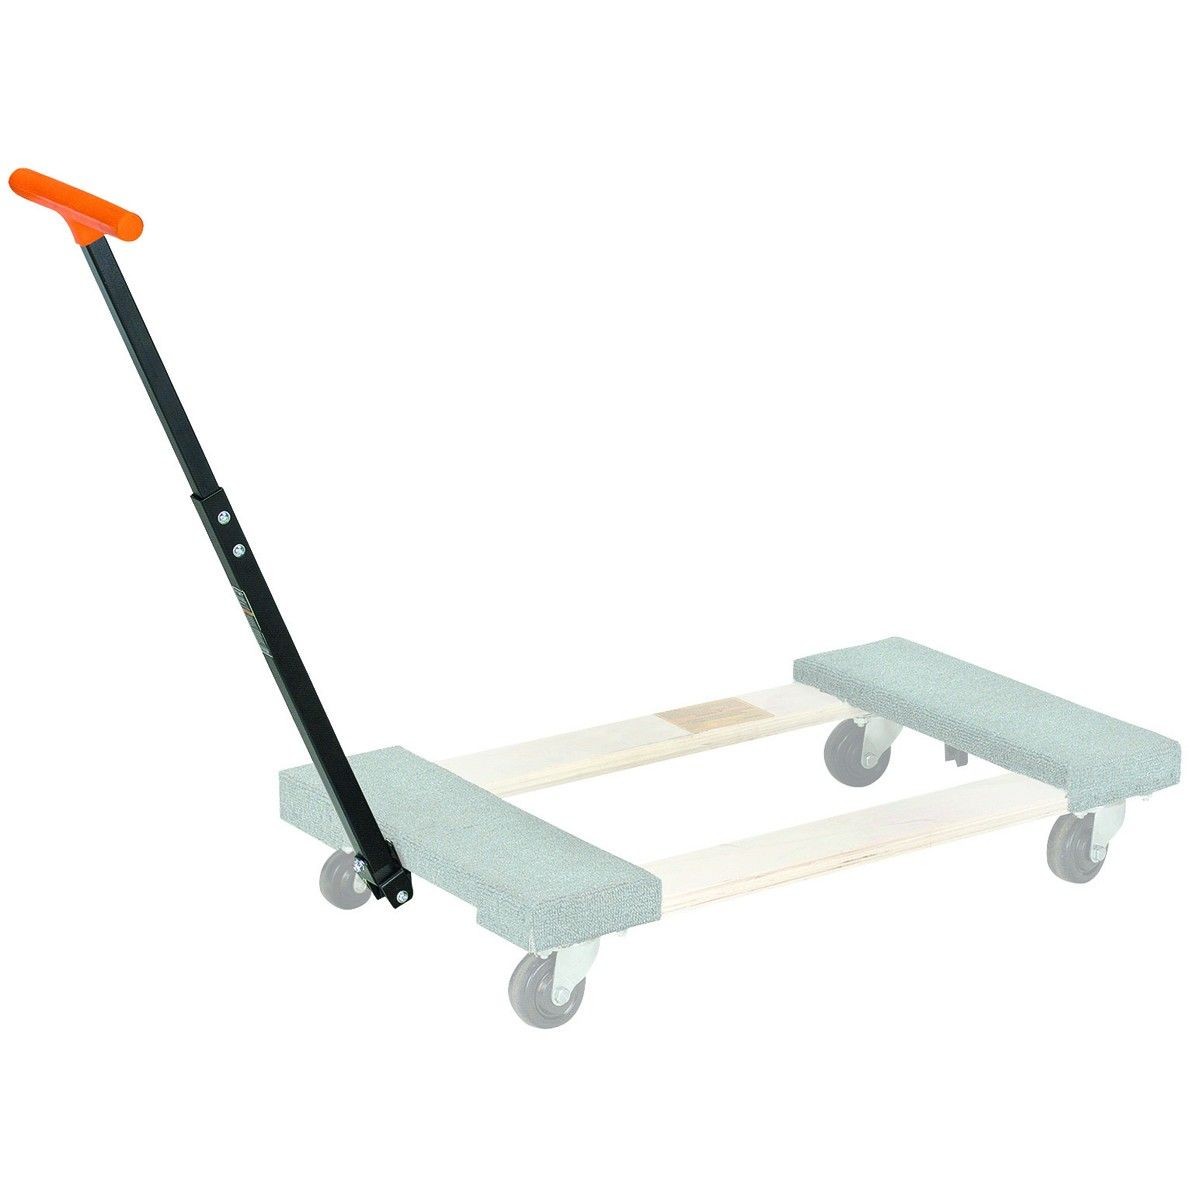 Pin By Scentsy On Cart In 2020 Diy Moving Wooden Furniture Dolly